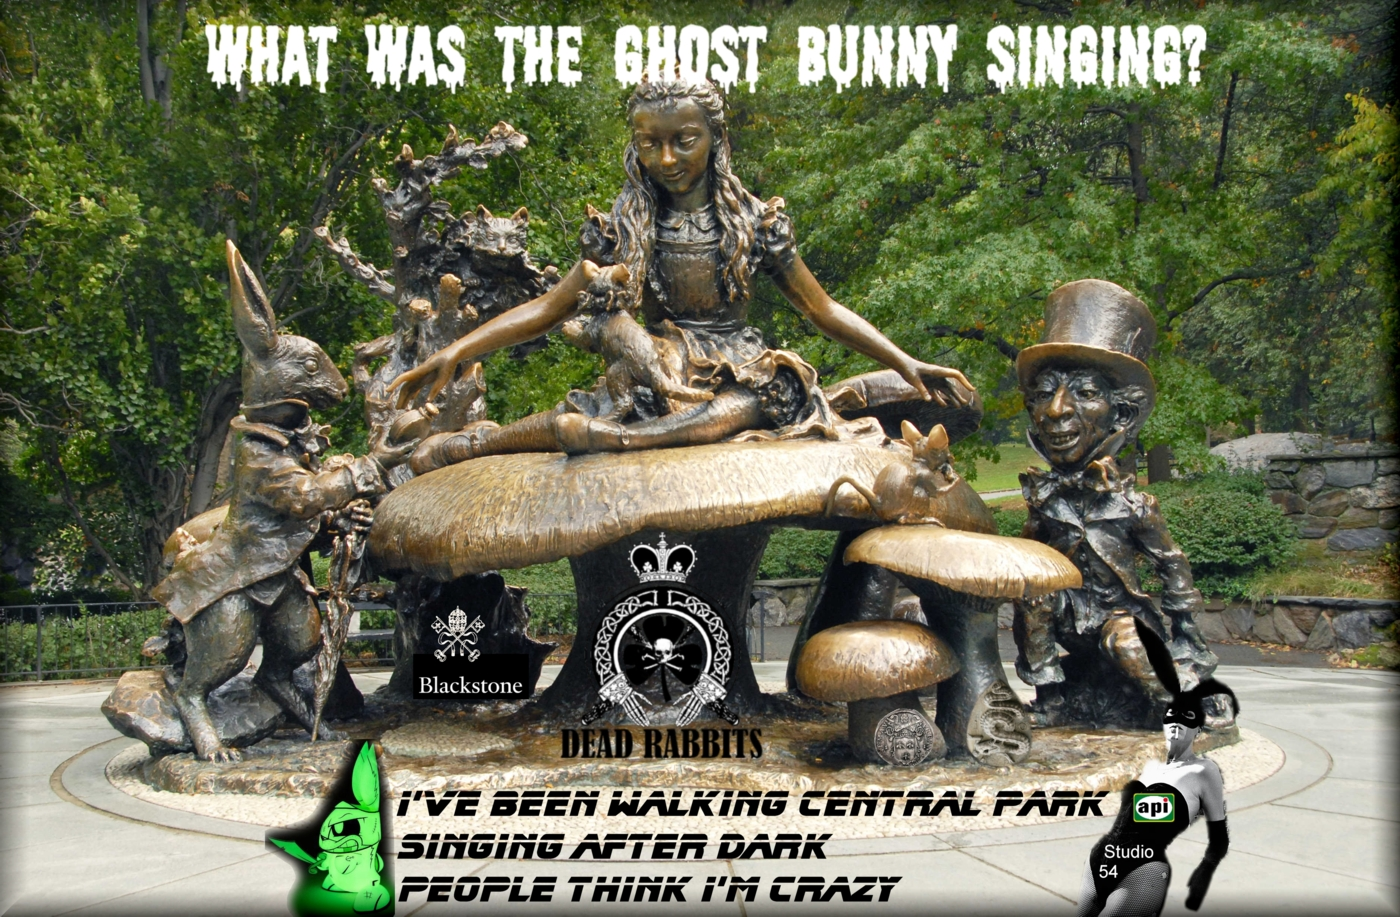 songs-from-the-ghost-bunny-gallery-image.jpg